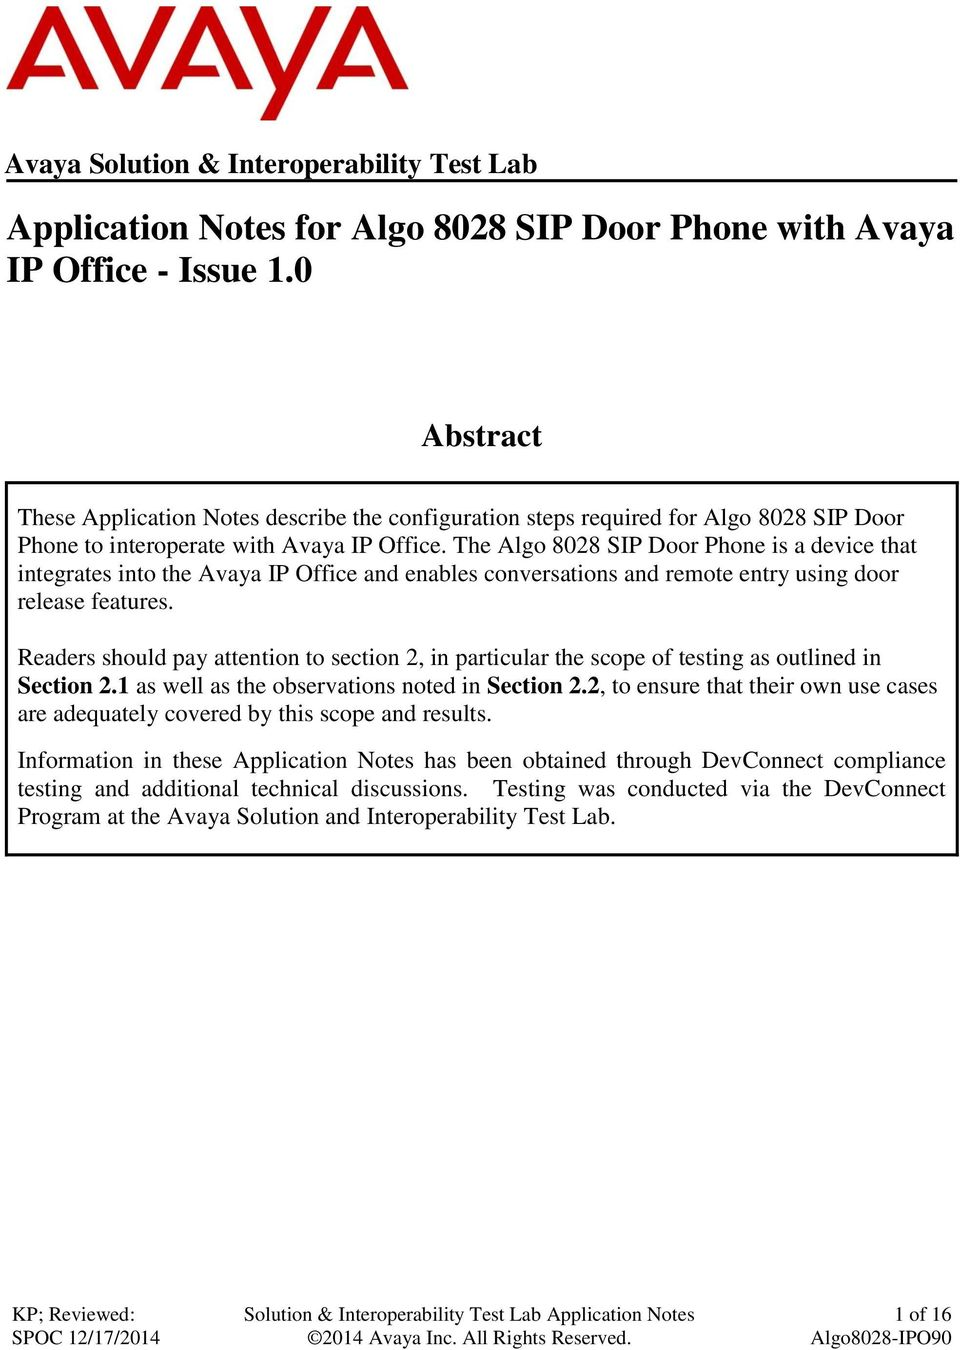 The Algo 8028 SIP Door Phone is a device that integrates into the Avaya IP Office and enables conversations and remote entry using door release features.